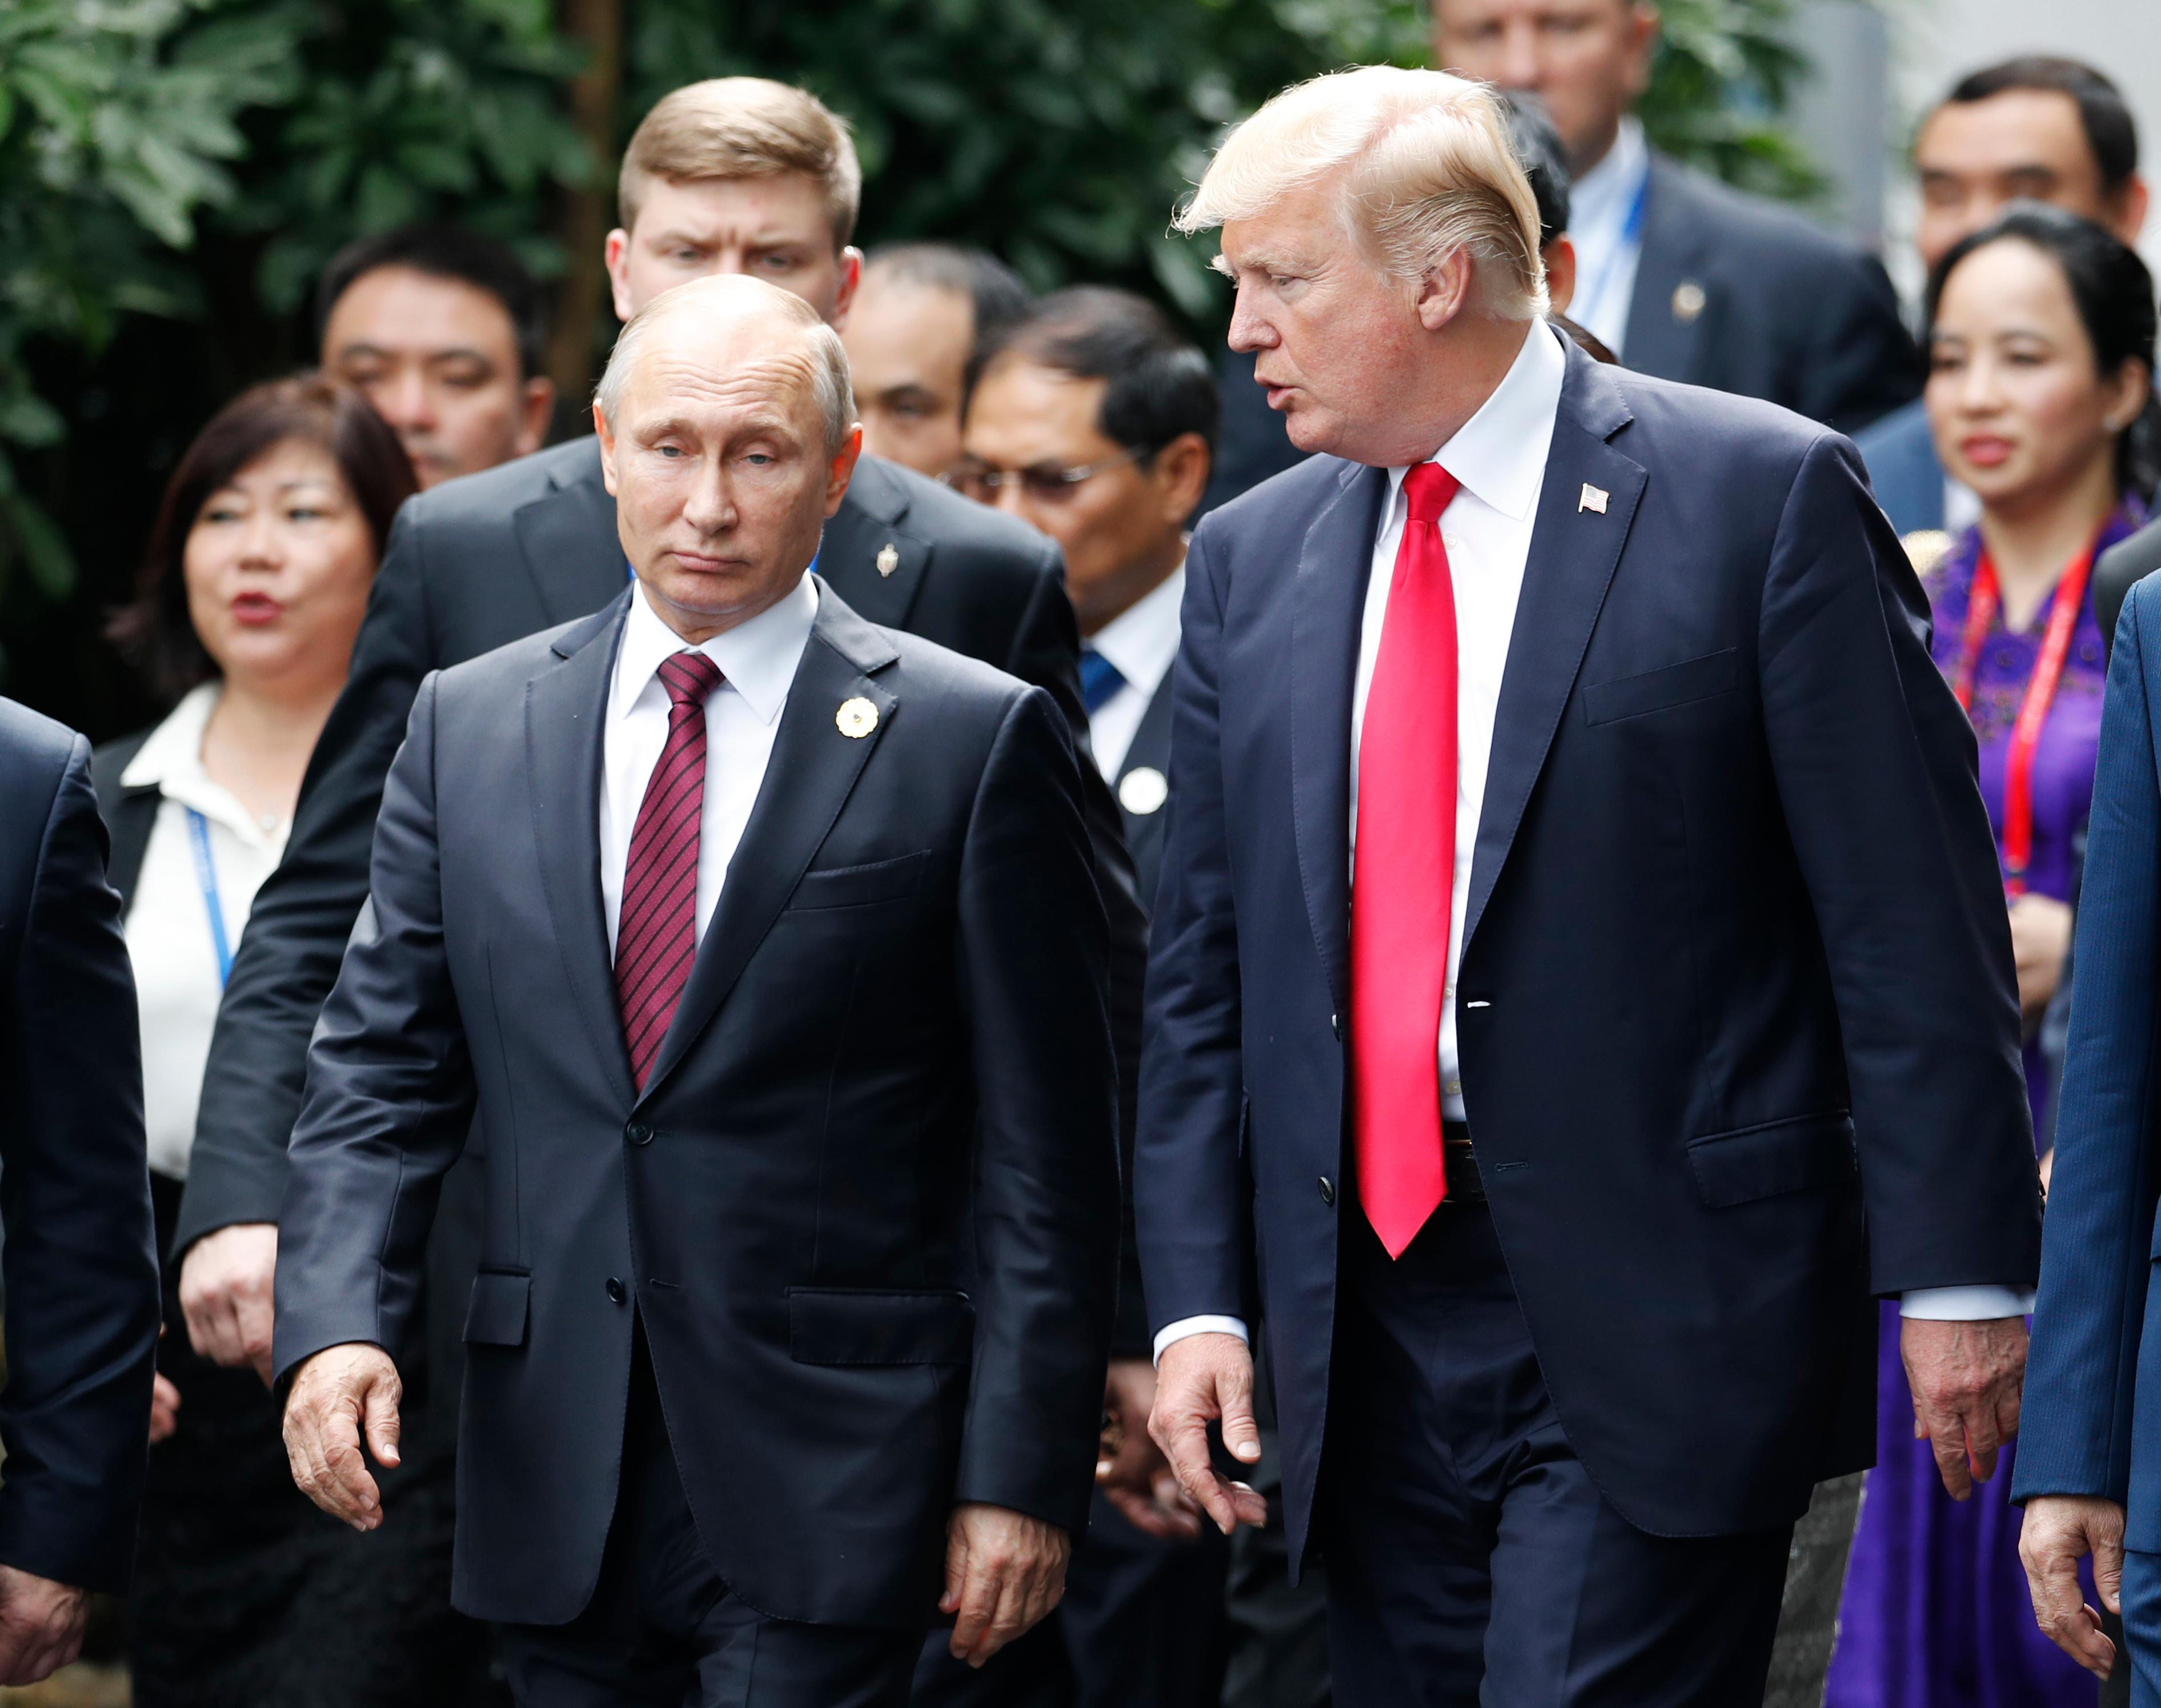 U.S. President Donald Trump, right, and Russia's President Vladimir Putin talk during the family photo session at the APEC Summit in Danang, Vietnam Saturday, Nov. 11, 2017. (Jorge Silva/Pool Photo via AP)<p></p>